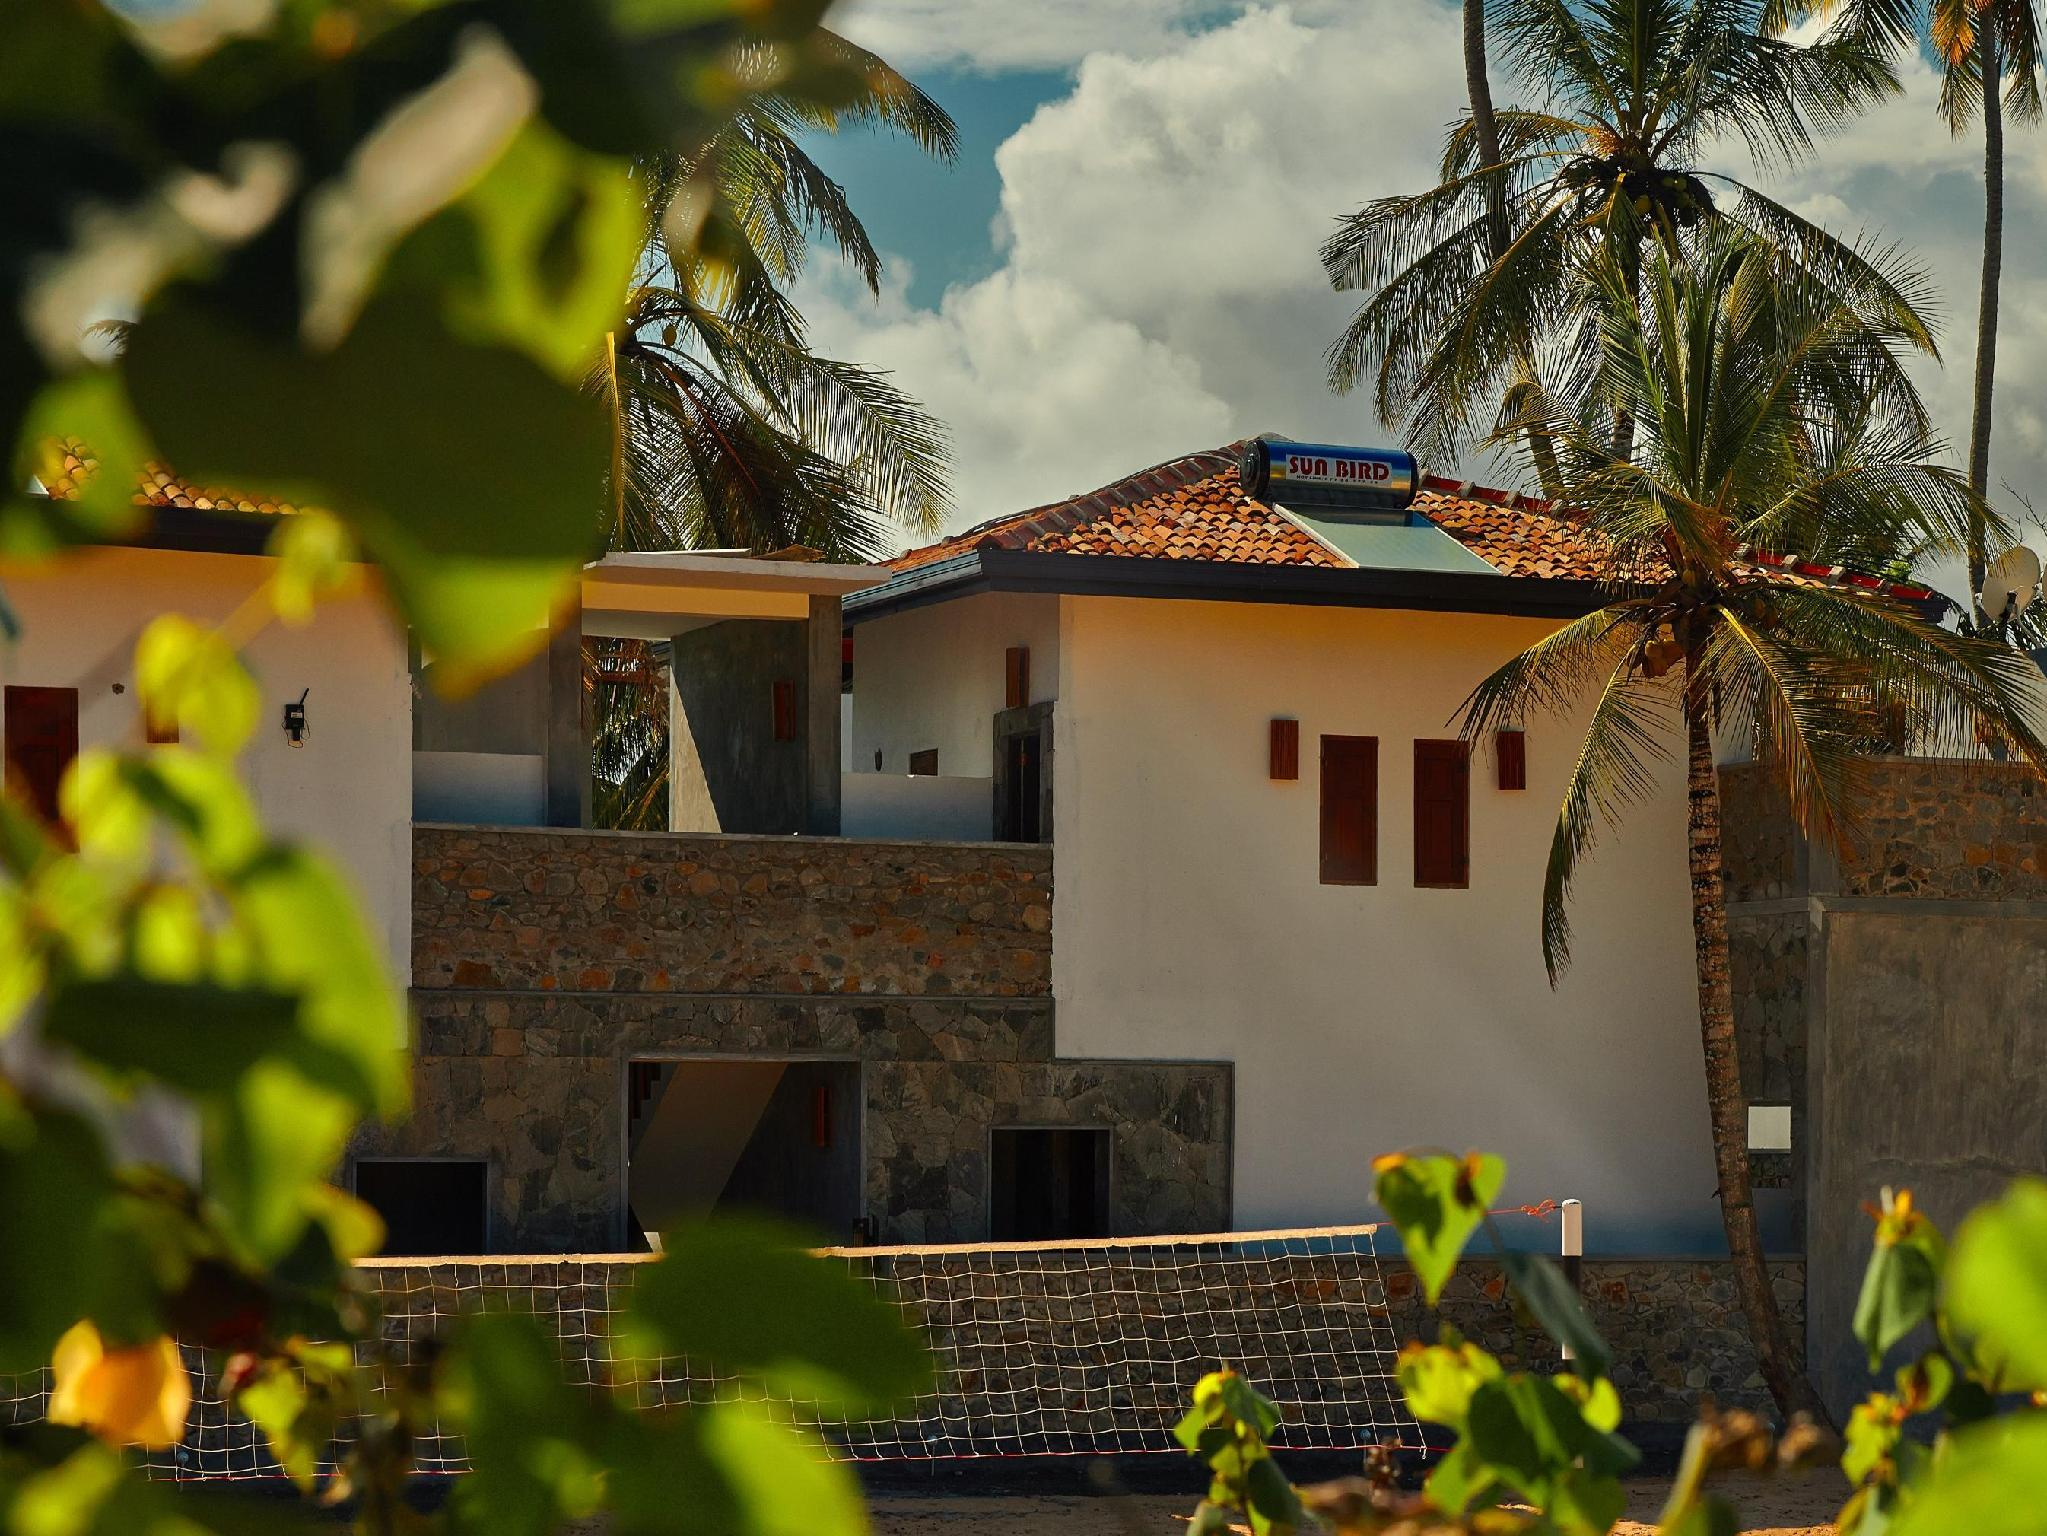 Tangalle Cabanas Hotel, Tangalle